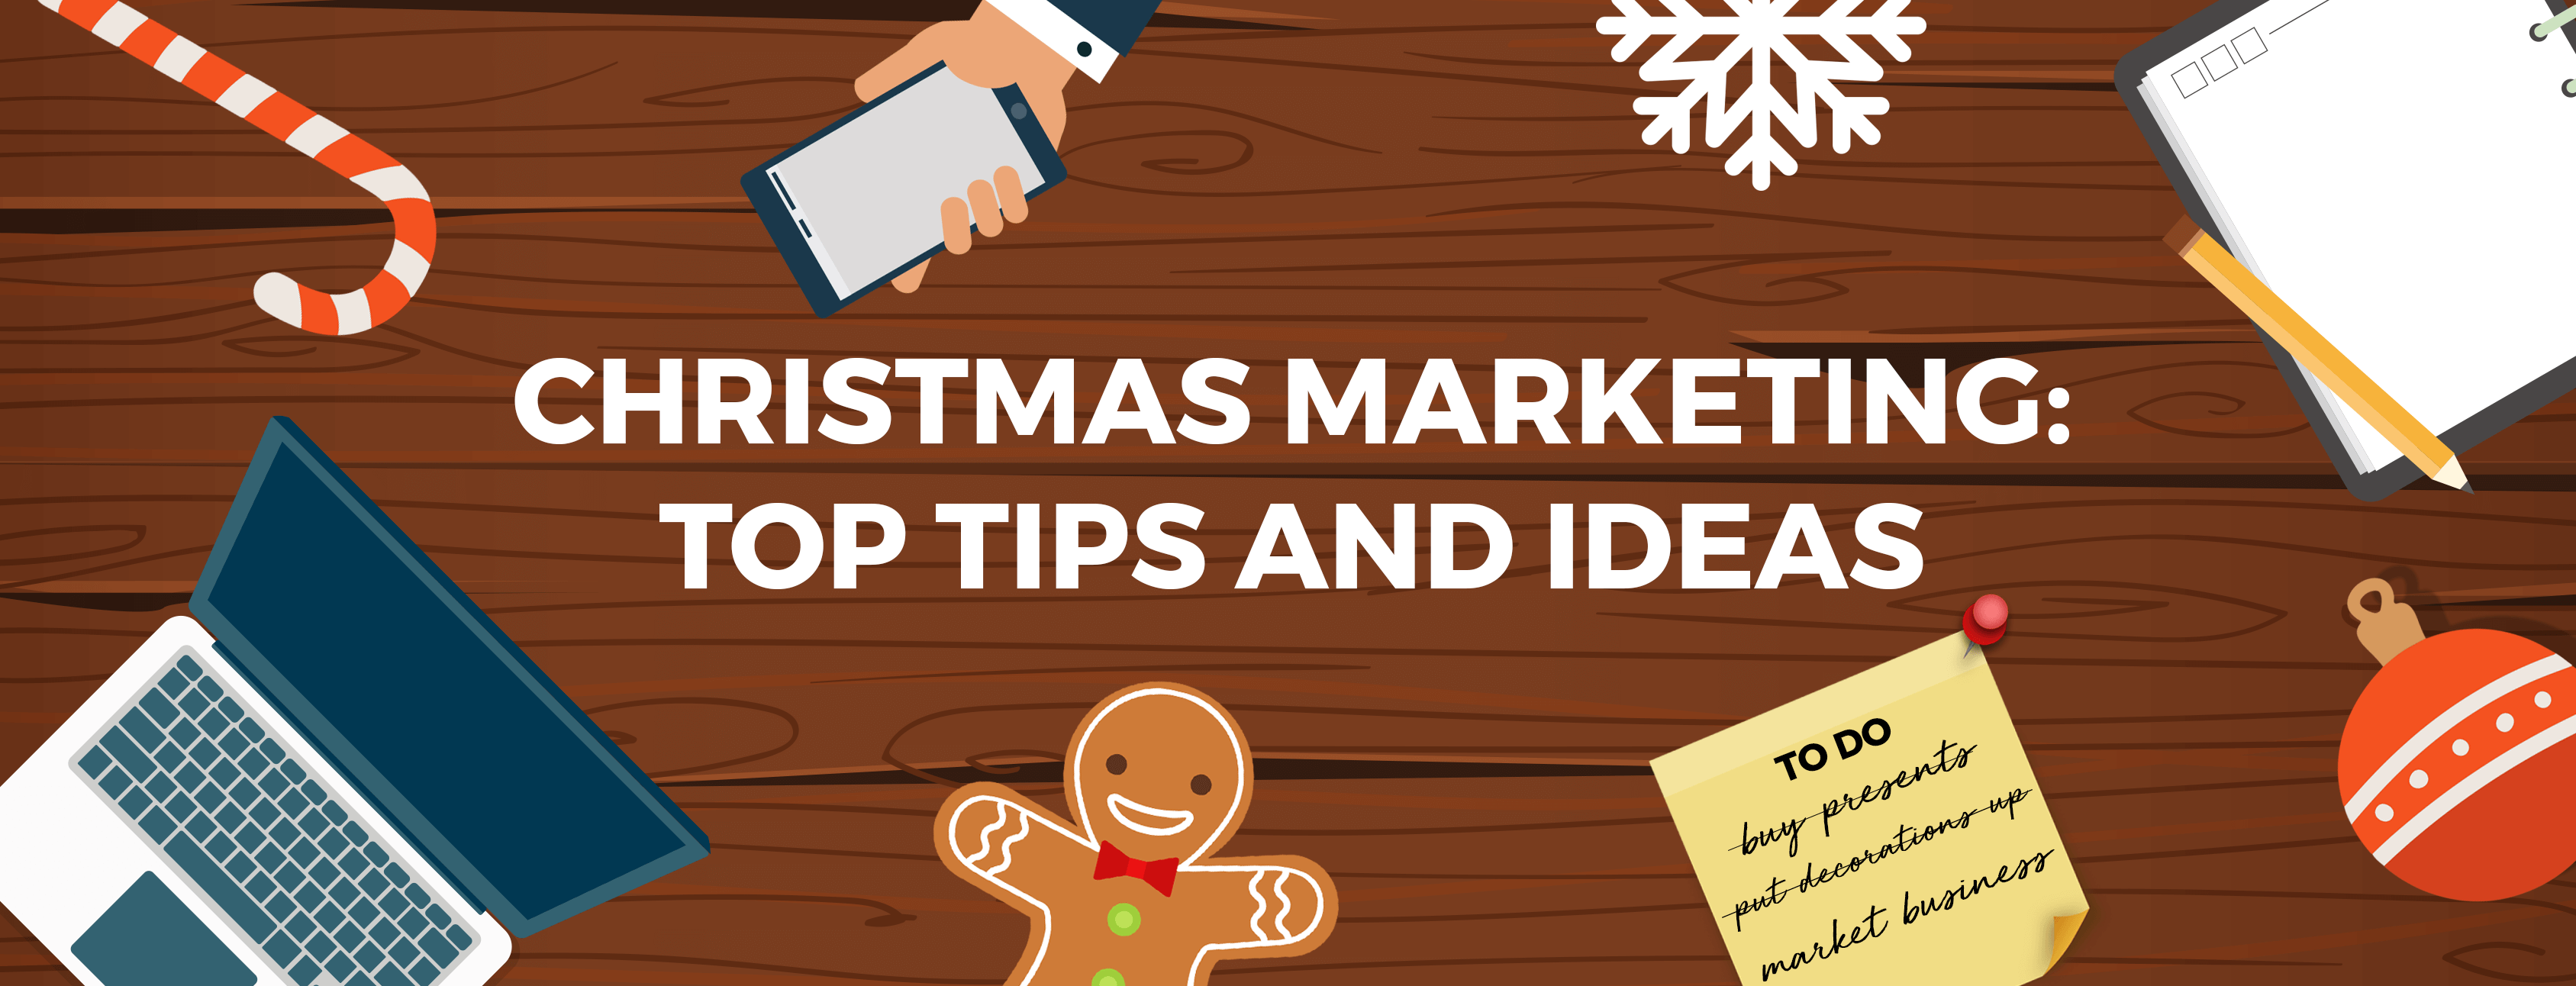 Christmas Marketing Top Tips And Promotional Ideas Superfly Marketing